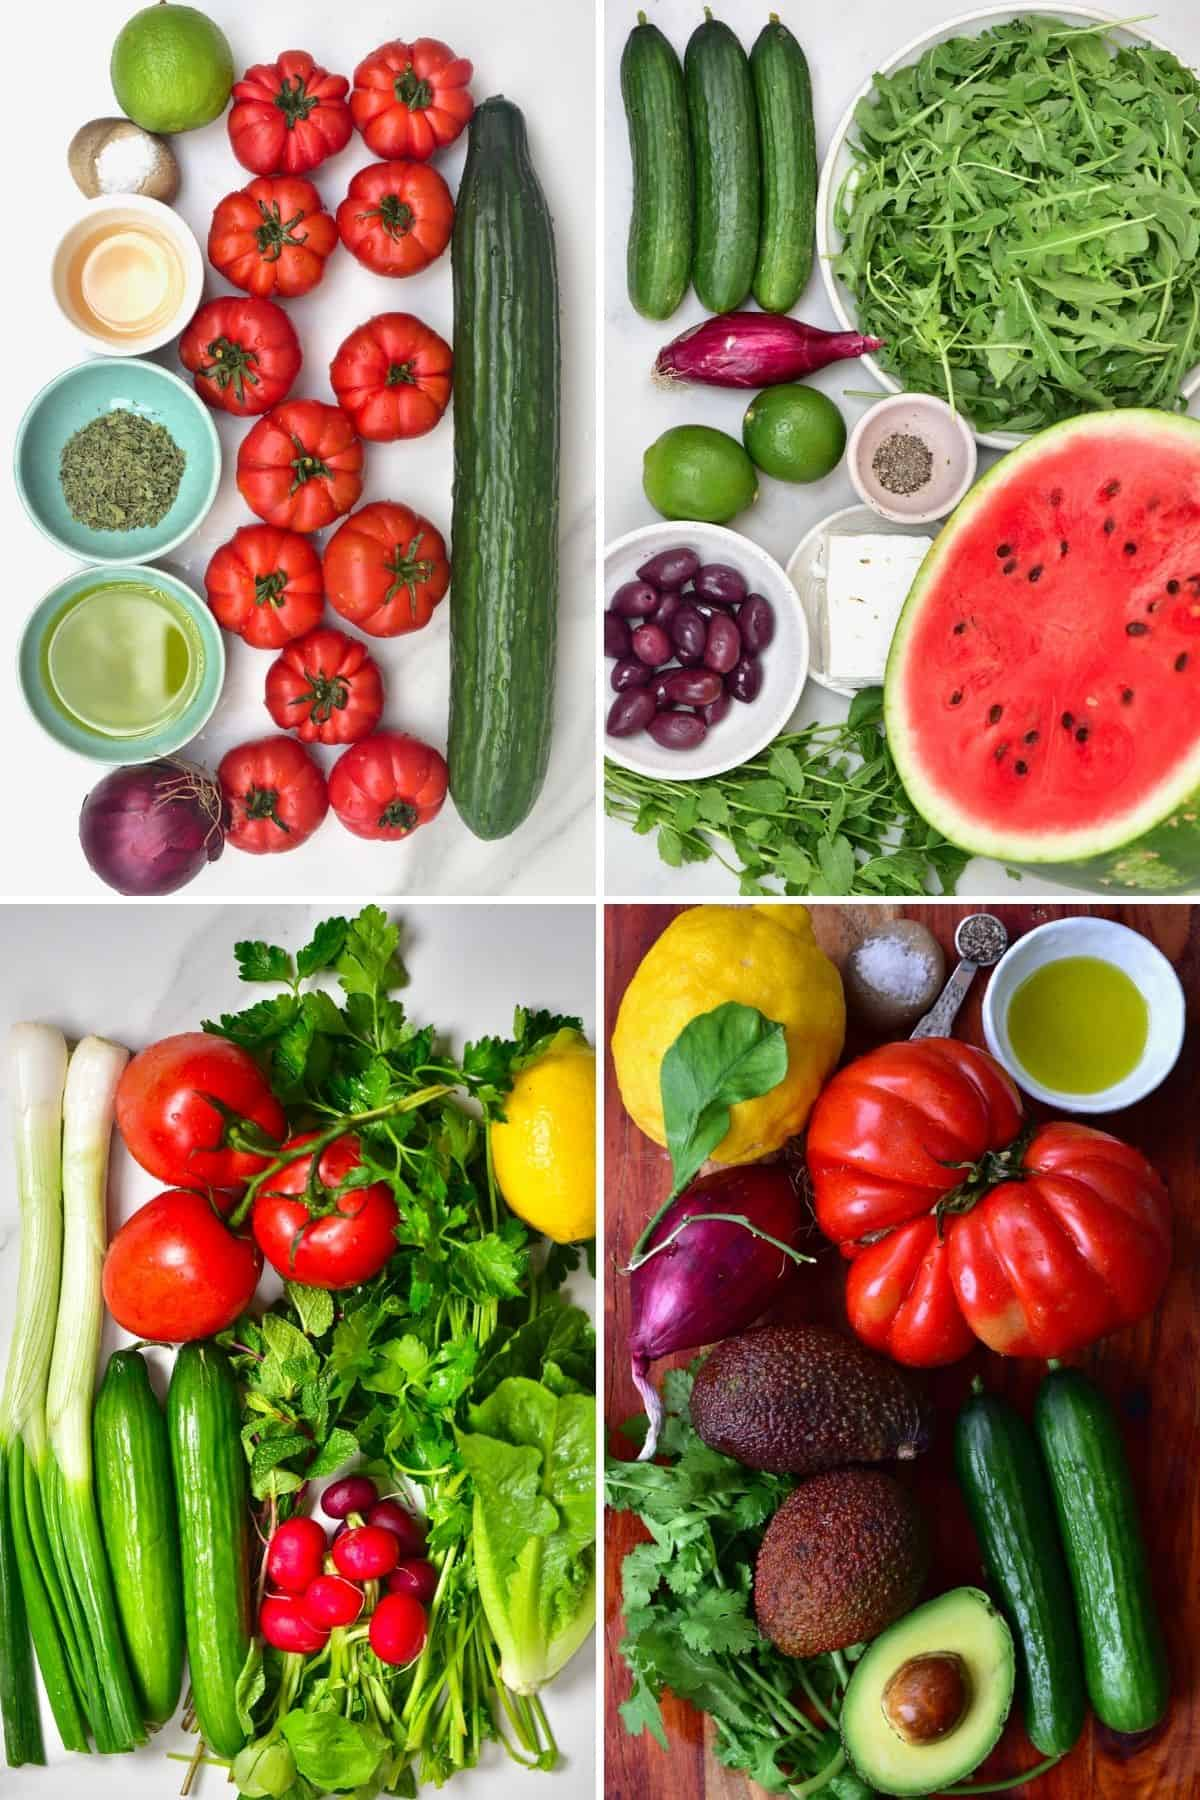 Ingredients for easy summer salads